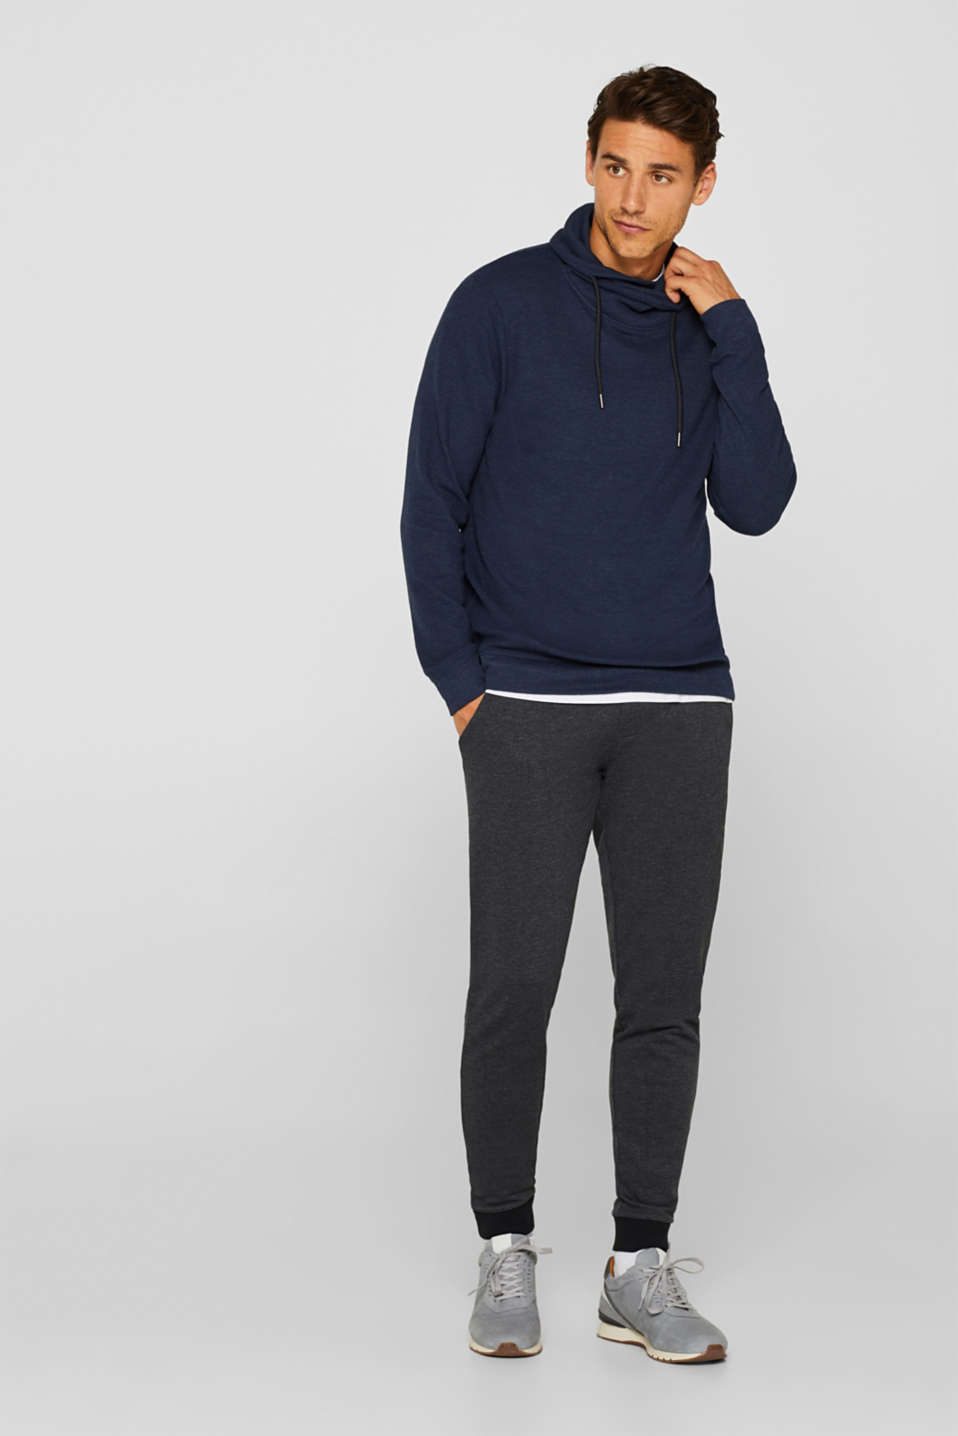 Piqué long sleeve top with a drawstring collar, NAVY, detail image number 2